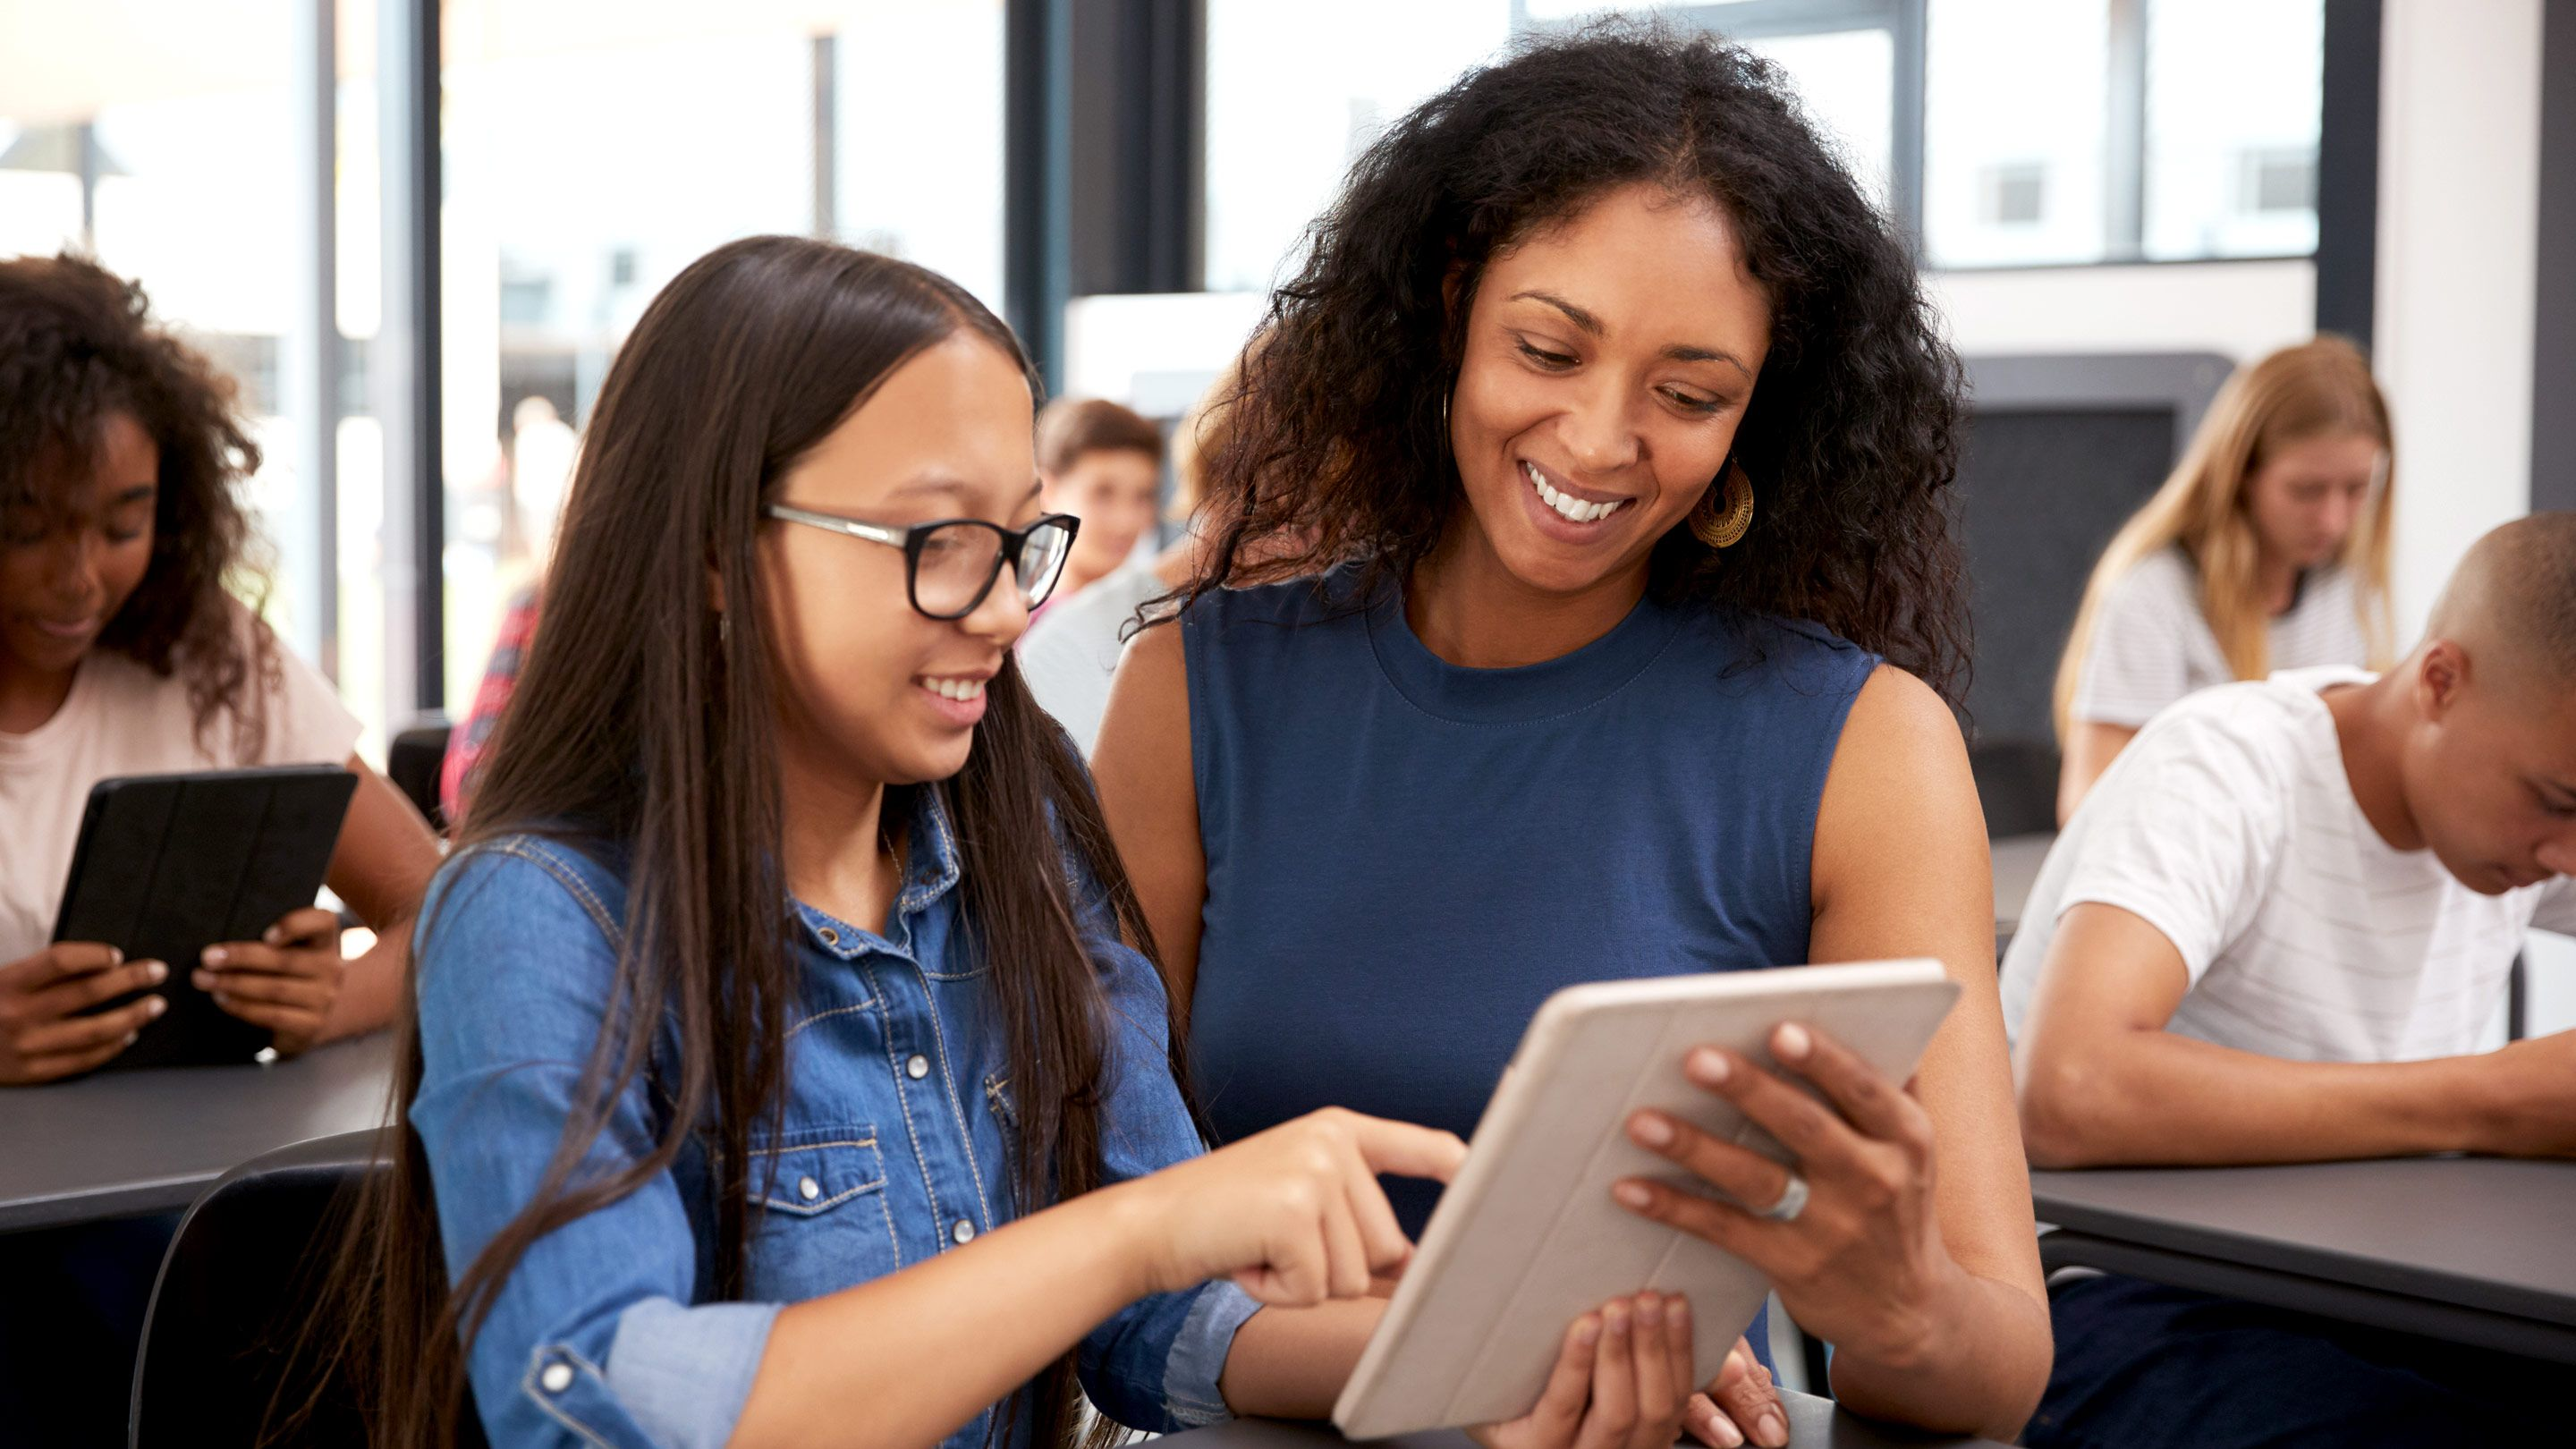 A female teacher and twelve-year-old girl are standing, smiling, and looking at a daily planner together.